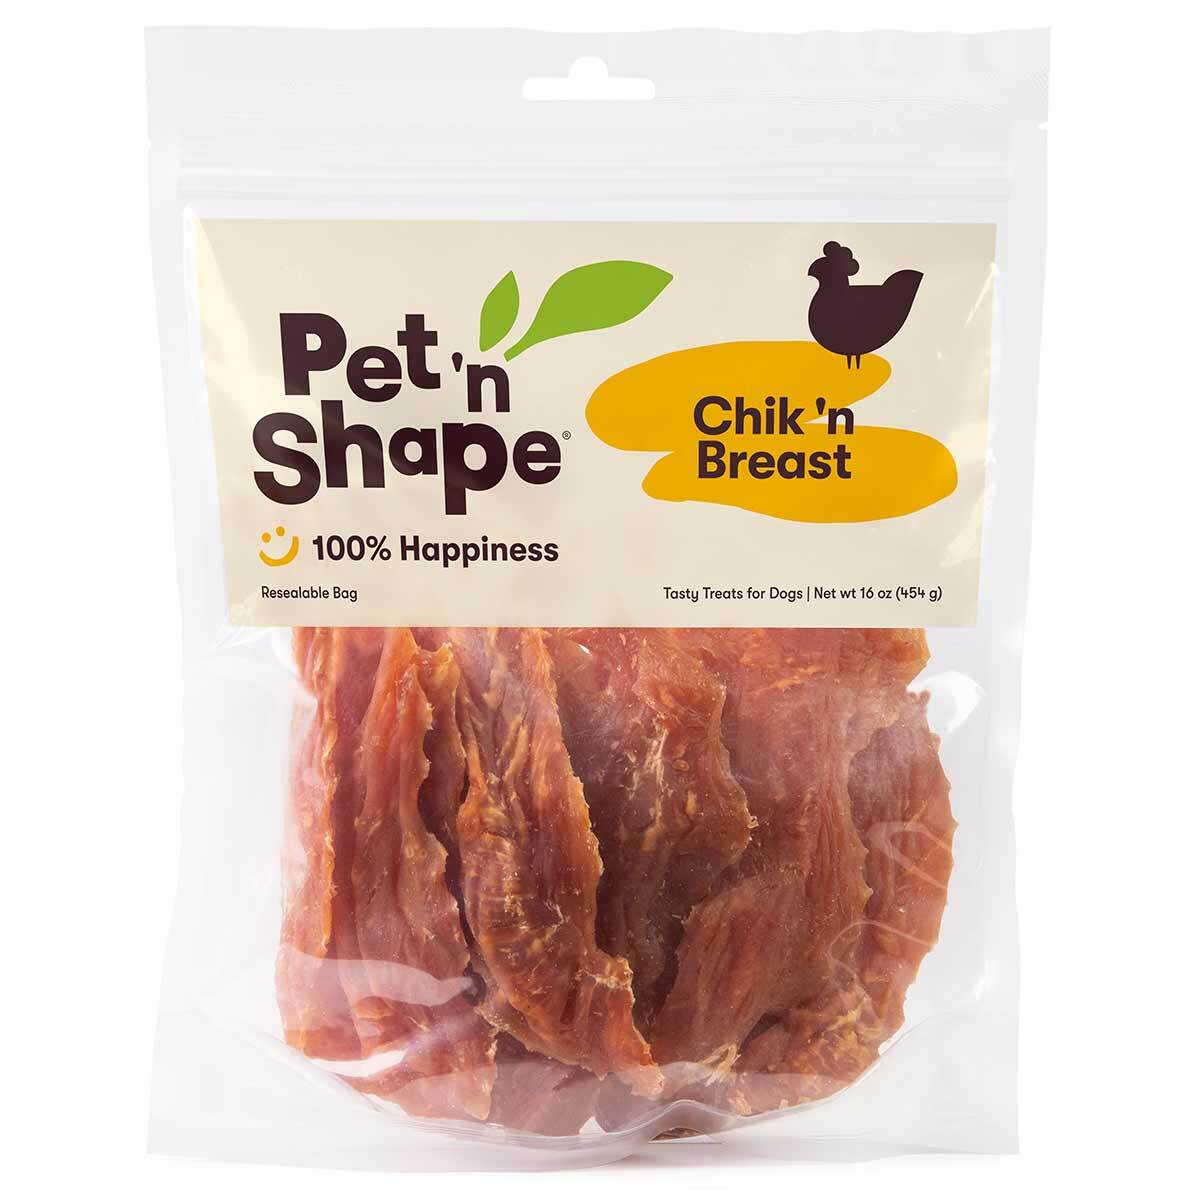 Pet 'n Shape Chik 'n Breast Chicken Jerky for Dogs - 16 oz